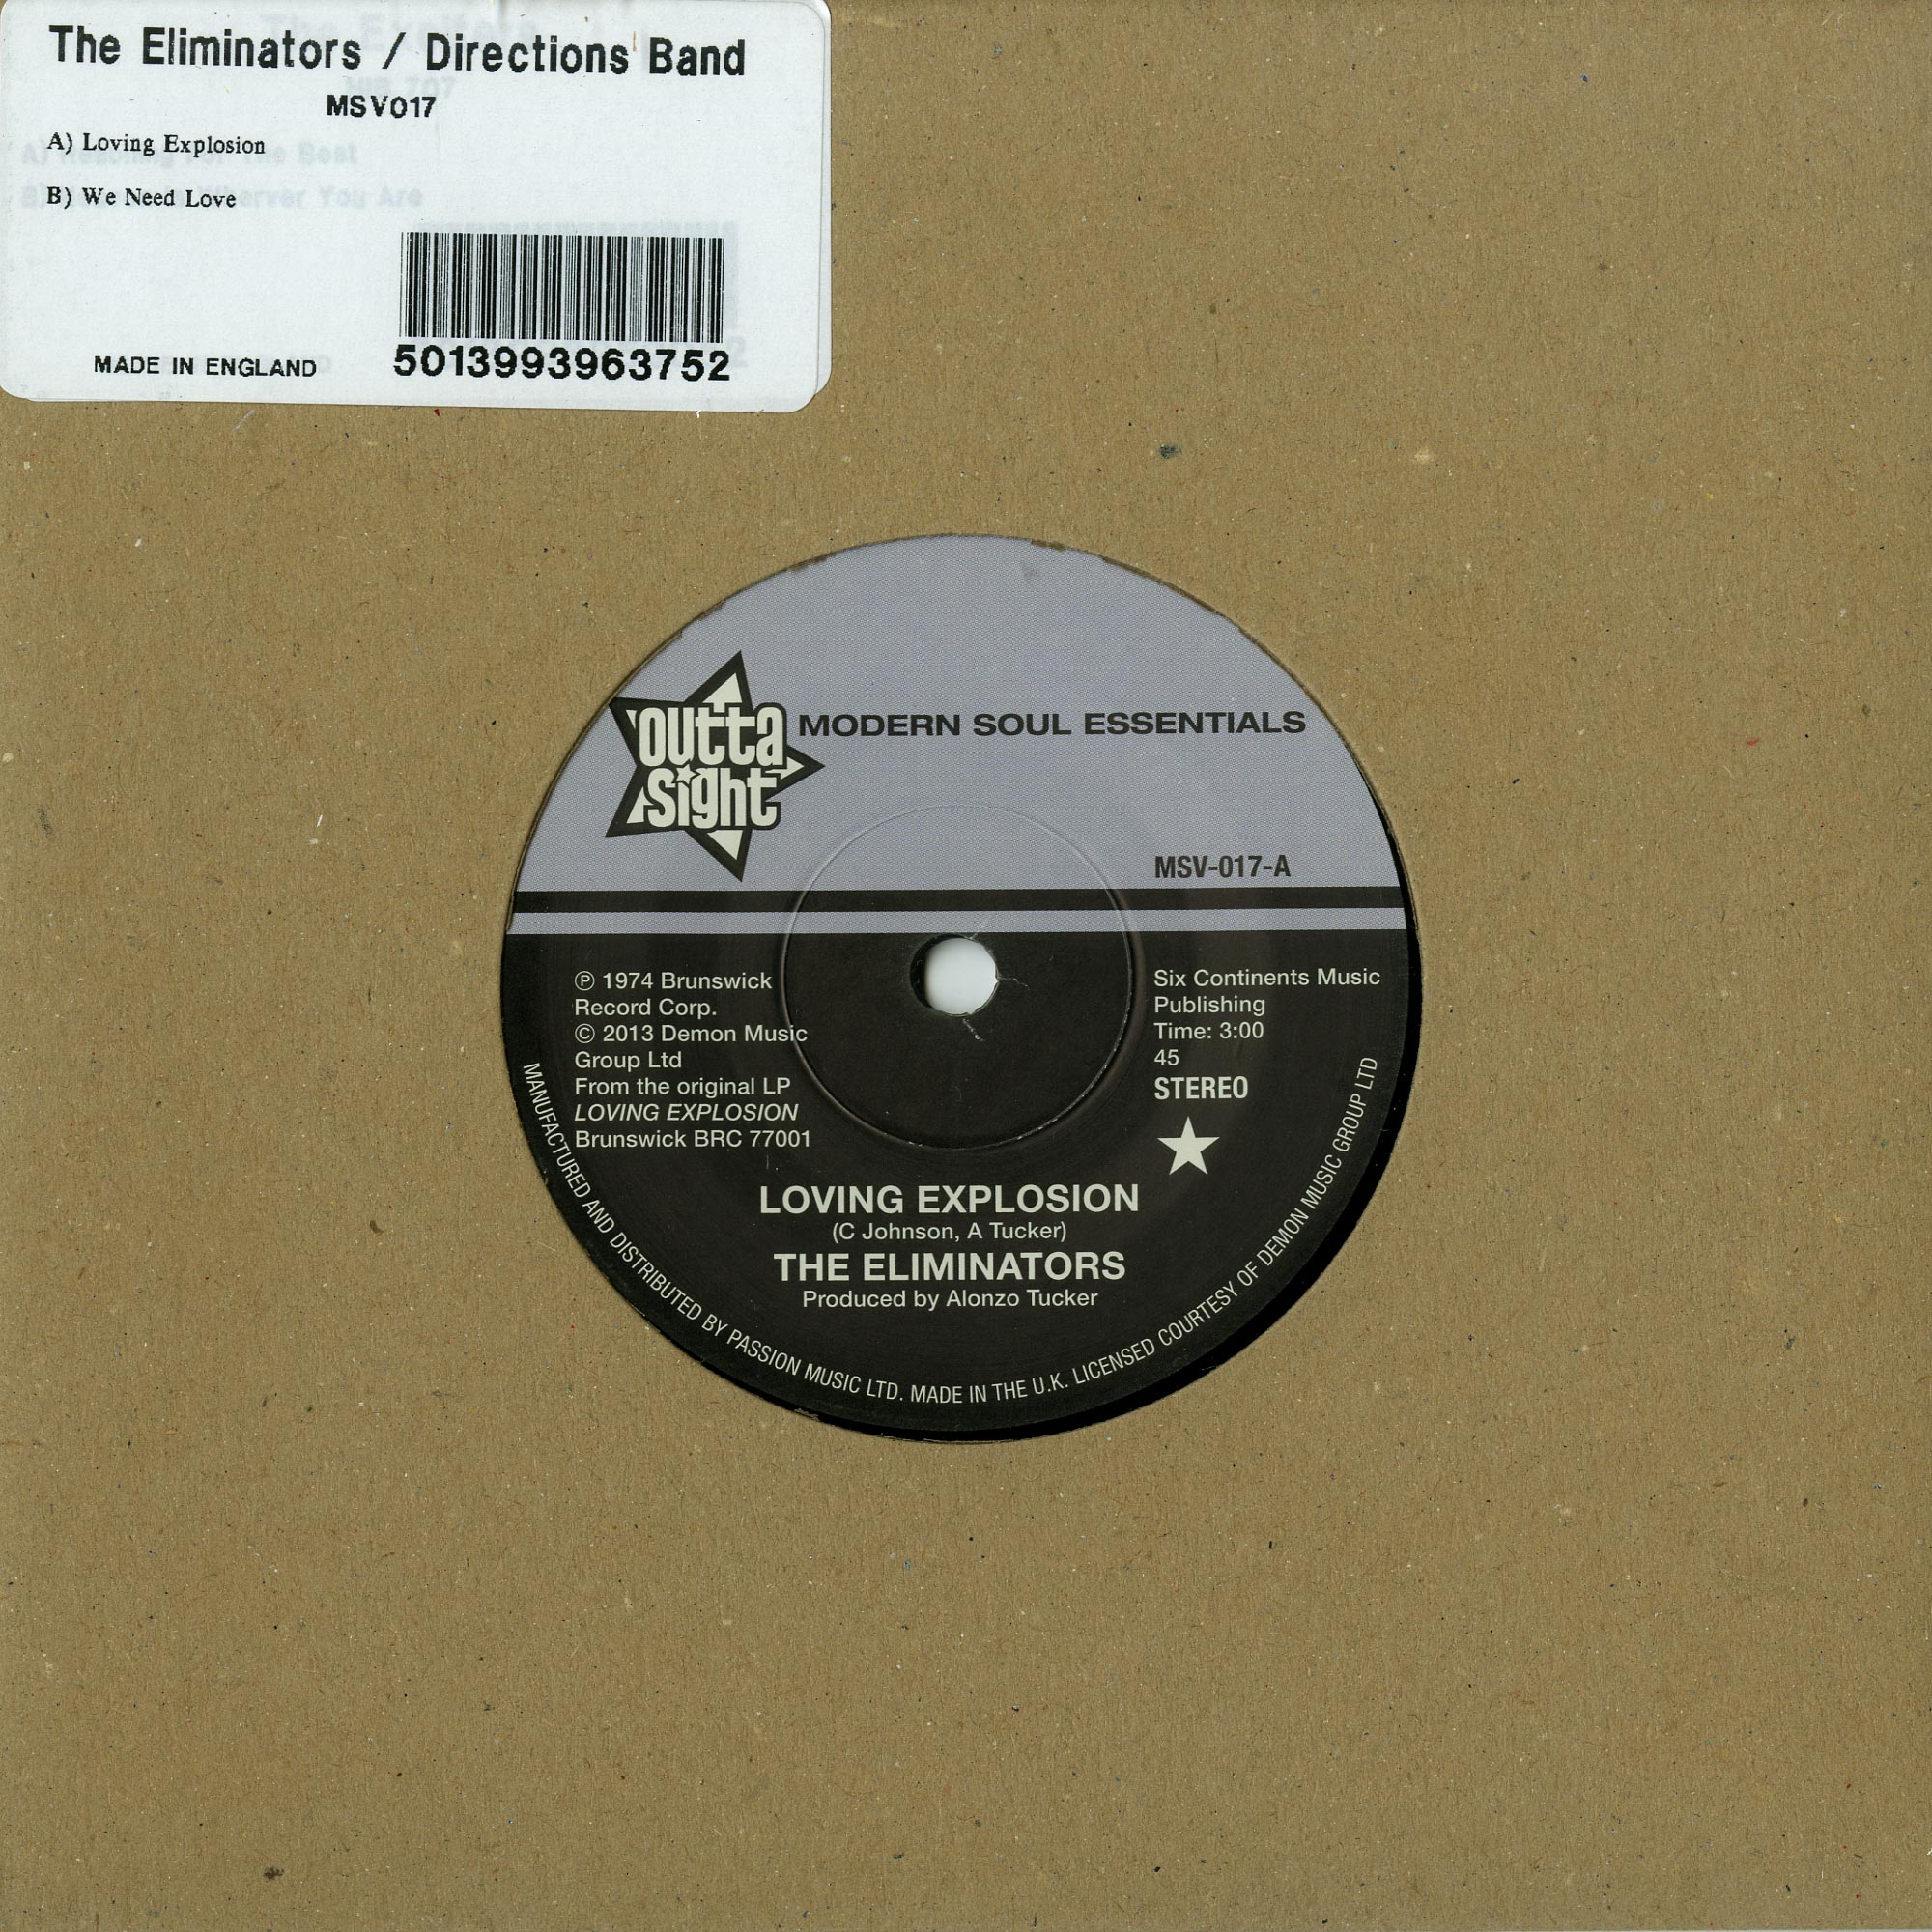 The Eliminators / Directions Band - LOVING EXPLOSION / WE NEED LOVE